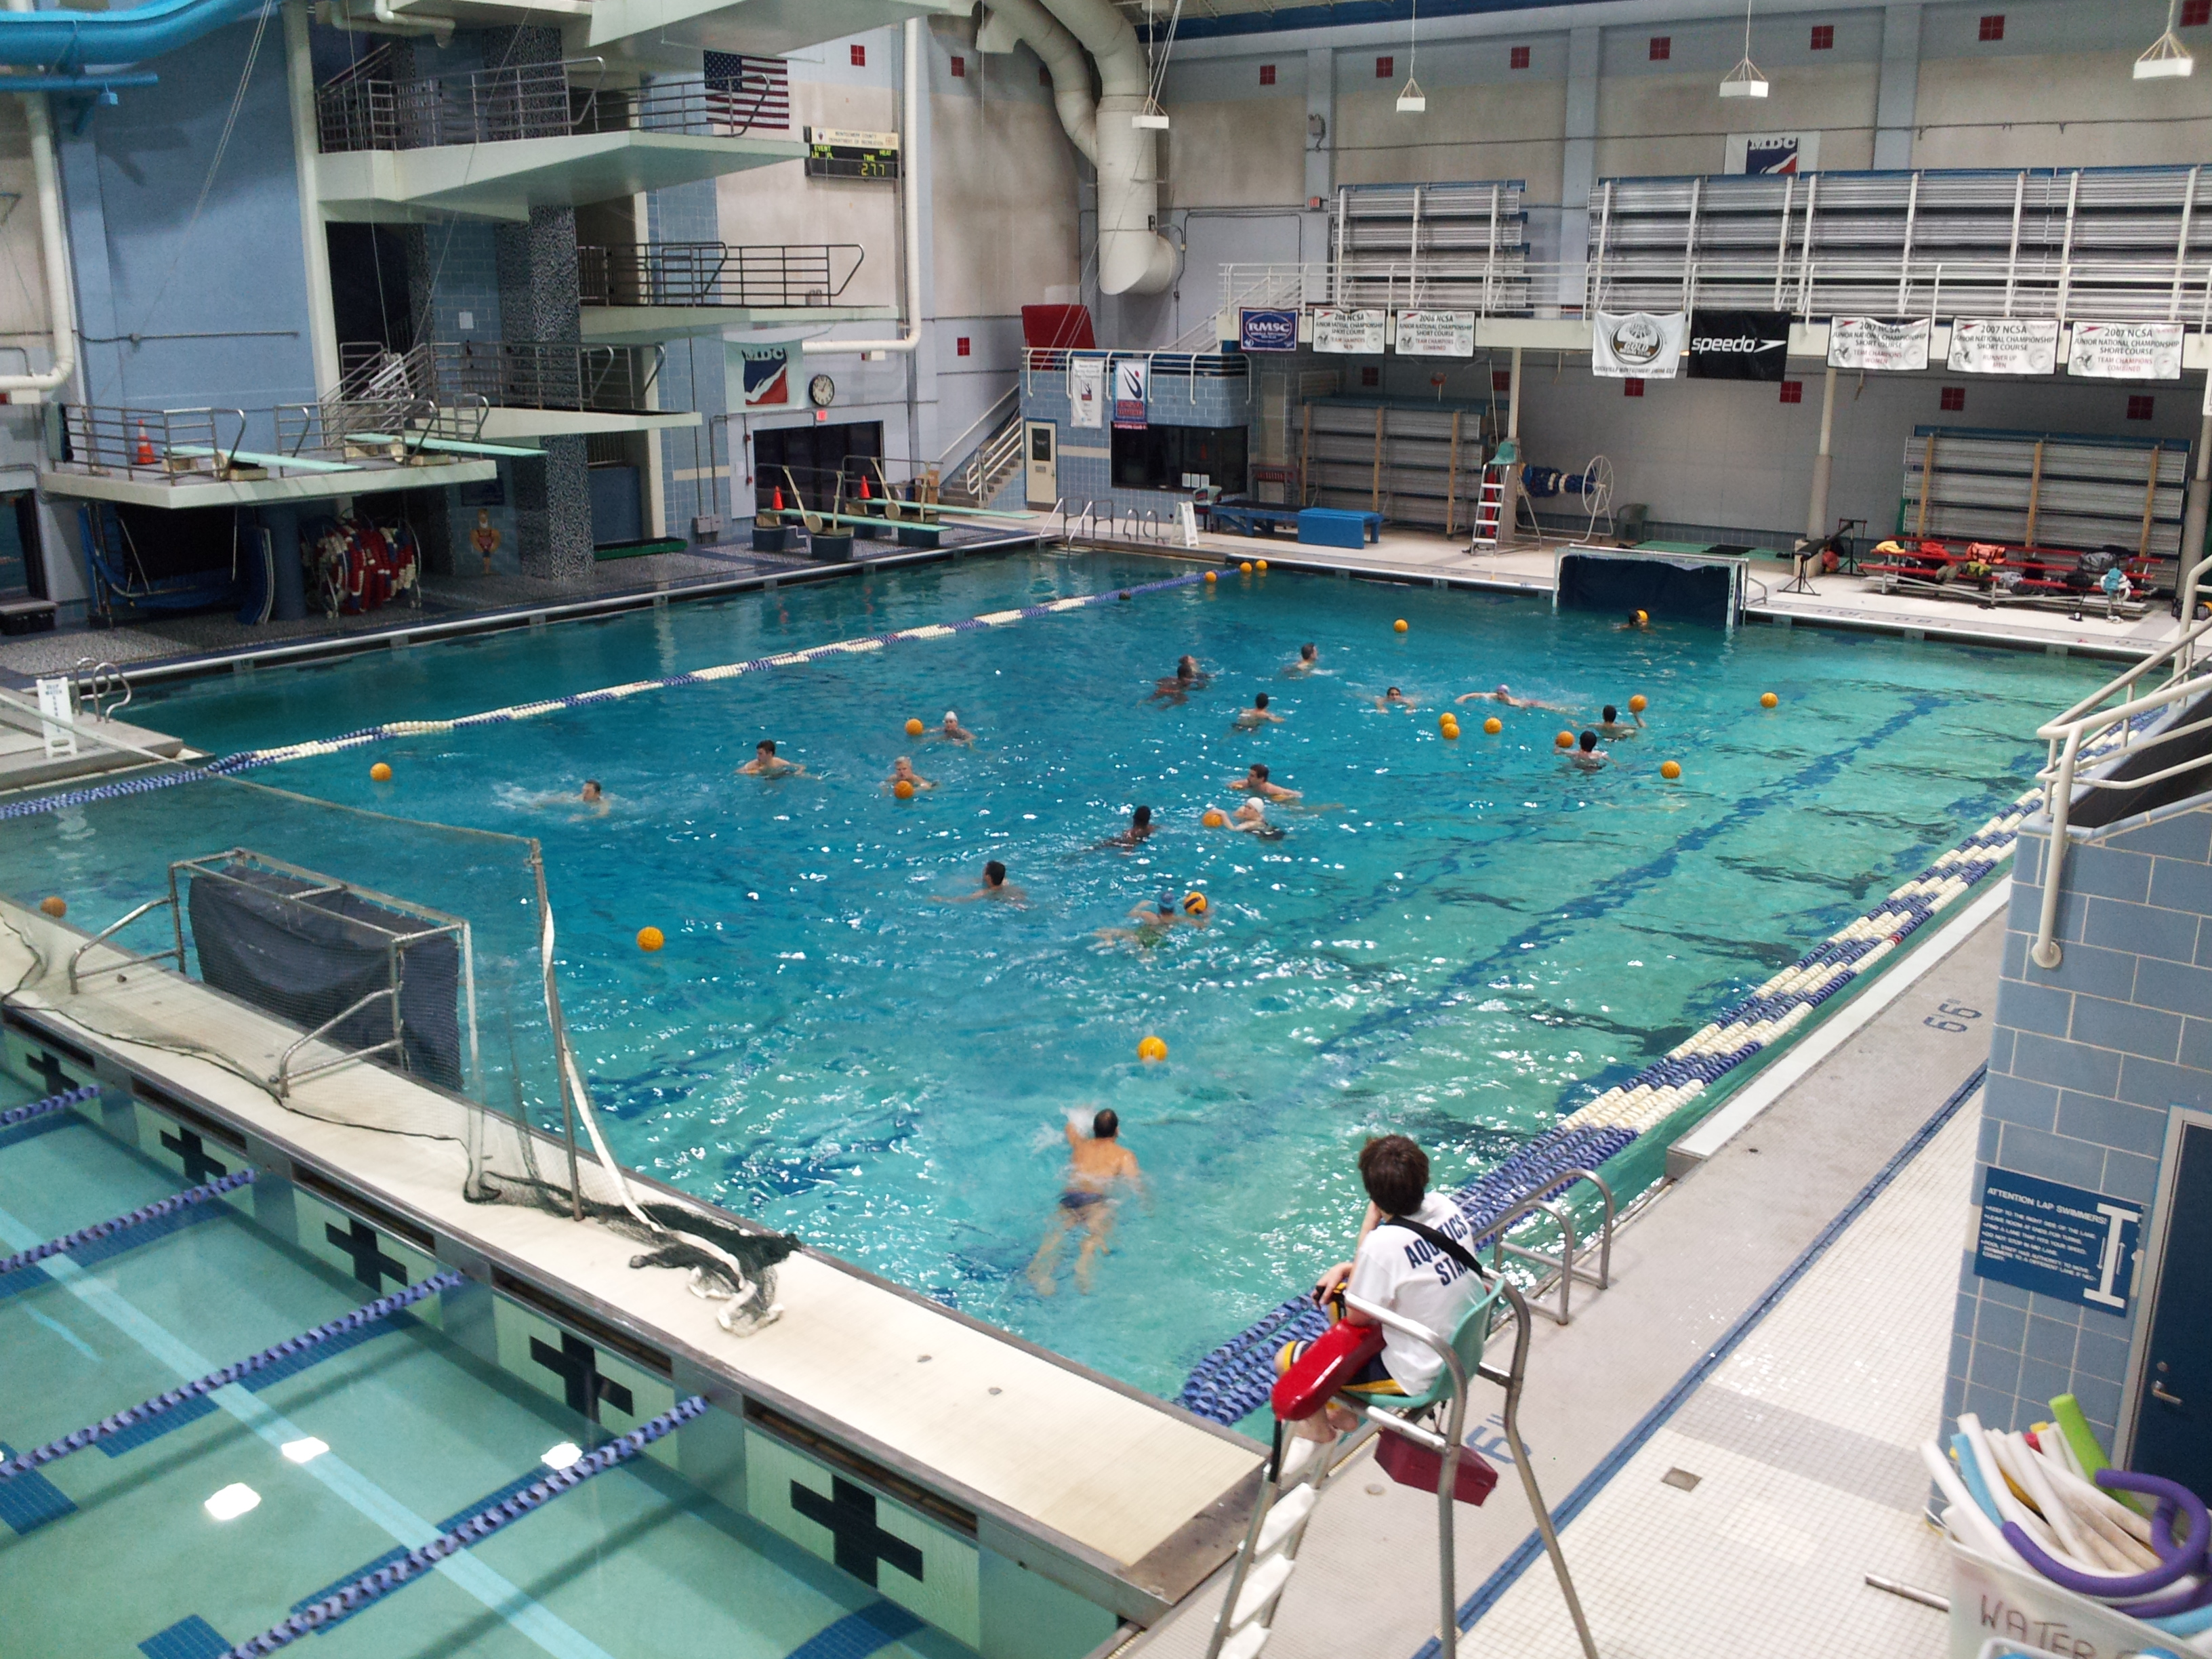 File:Montgomery Aquatic Center deep water pool 1.jpg - Wikimedia Commons